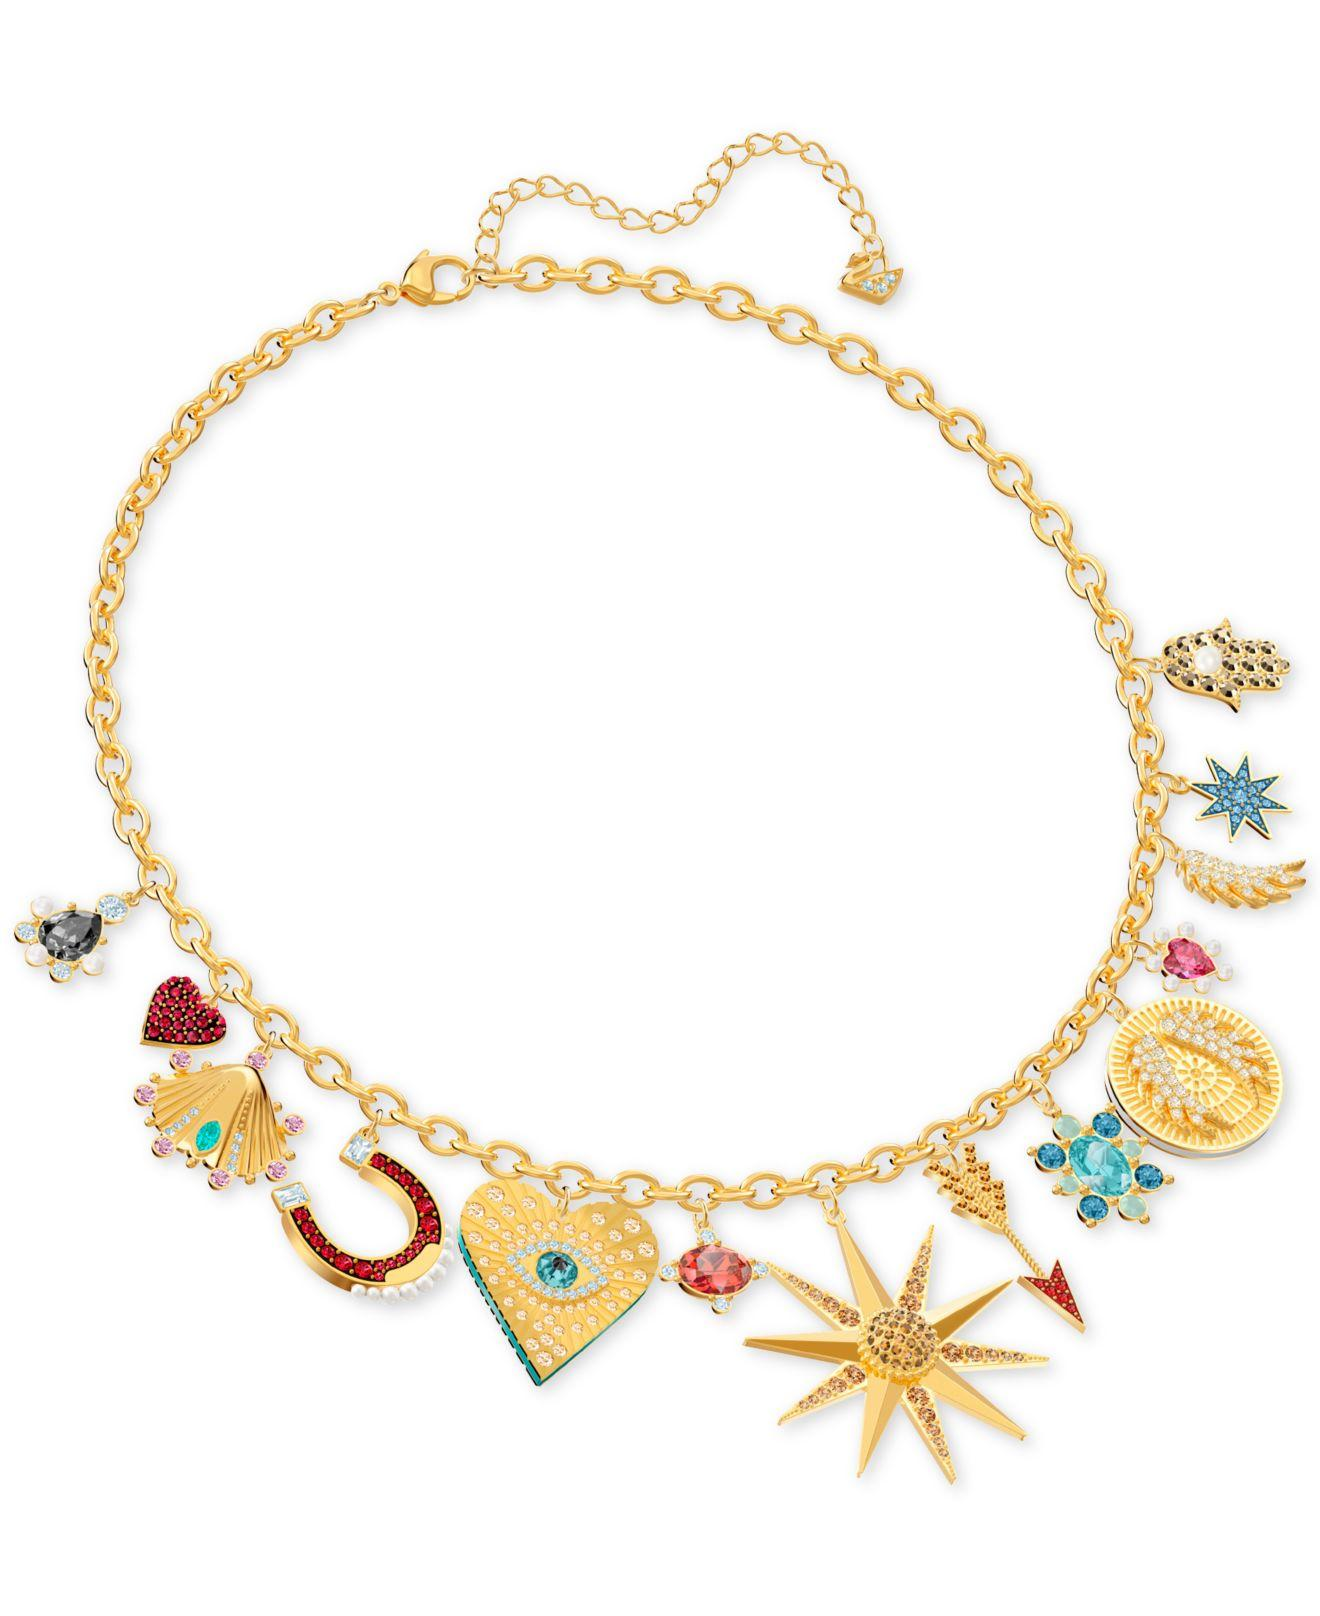 Lucky Goddess Charms Necklace